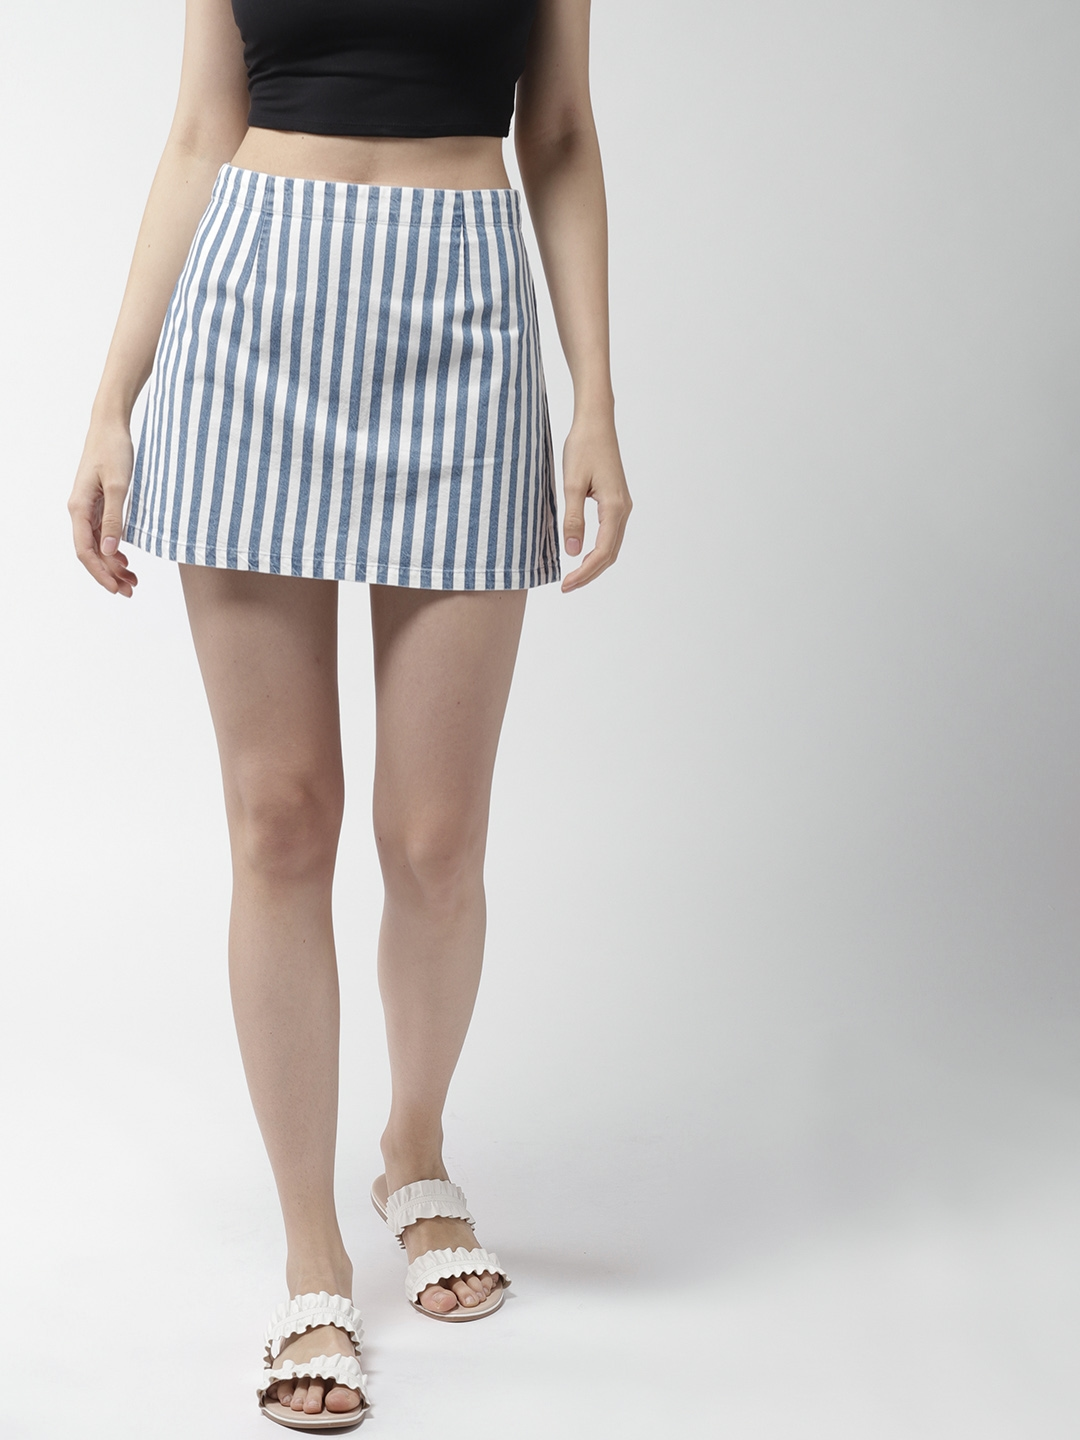 00cb9b59722fe Buy FOREVER 21 Blue & White Striped Mini A Line Skirt - Skirts for ...